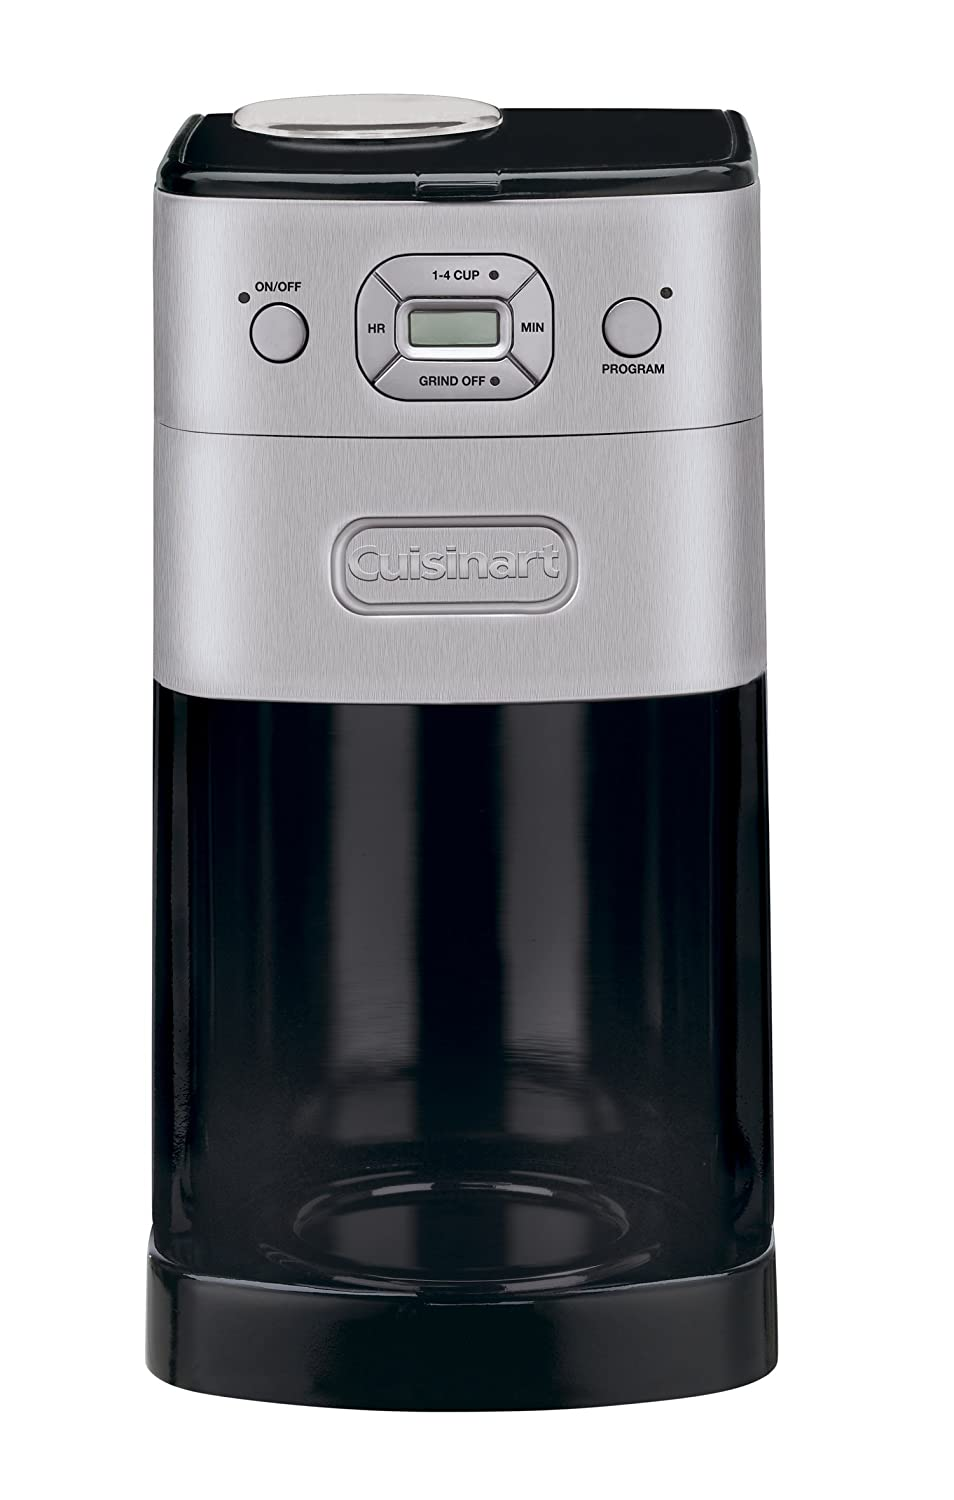 71WB0PNyLnL. SL1500  Cuisinart  Cup Stainless Steel Thermal Carafe Programmable Coffee Maker